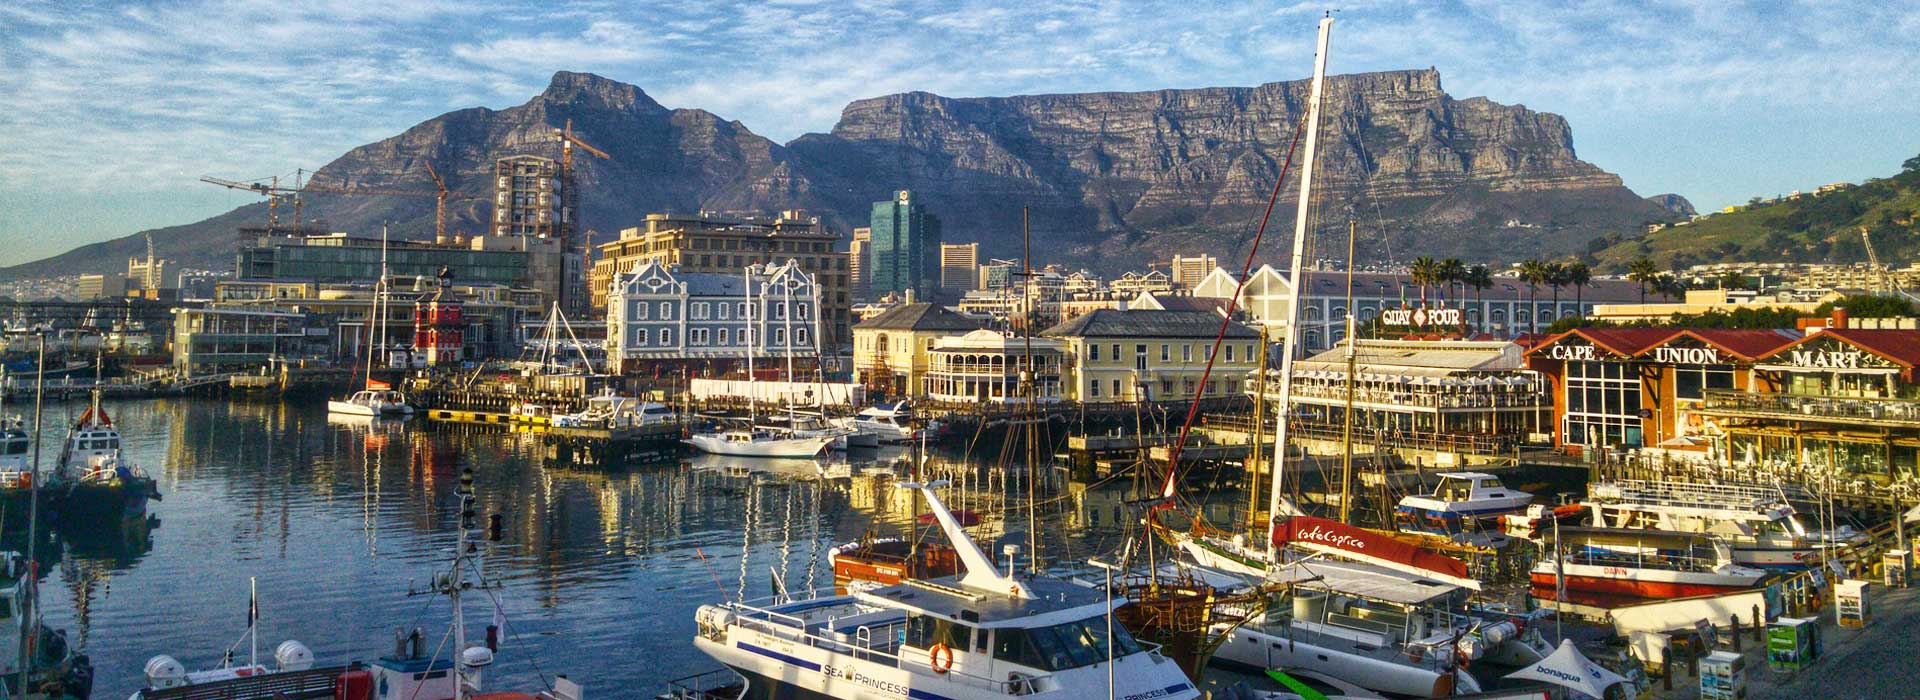 5D4N Enchanting Cape Town